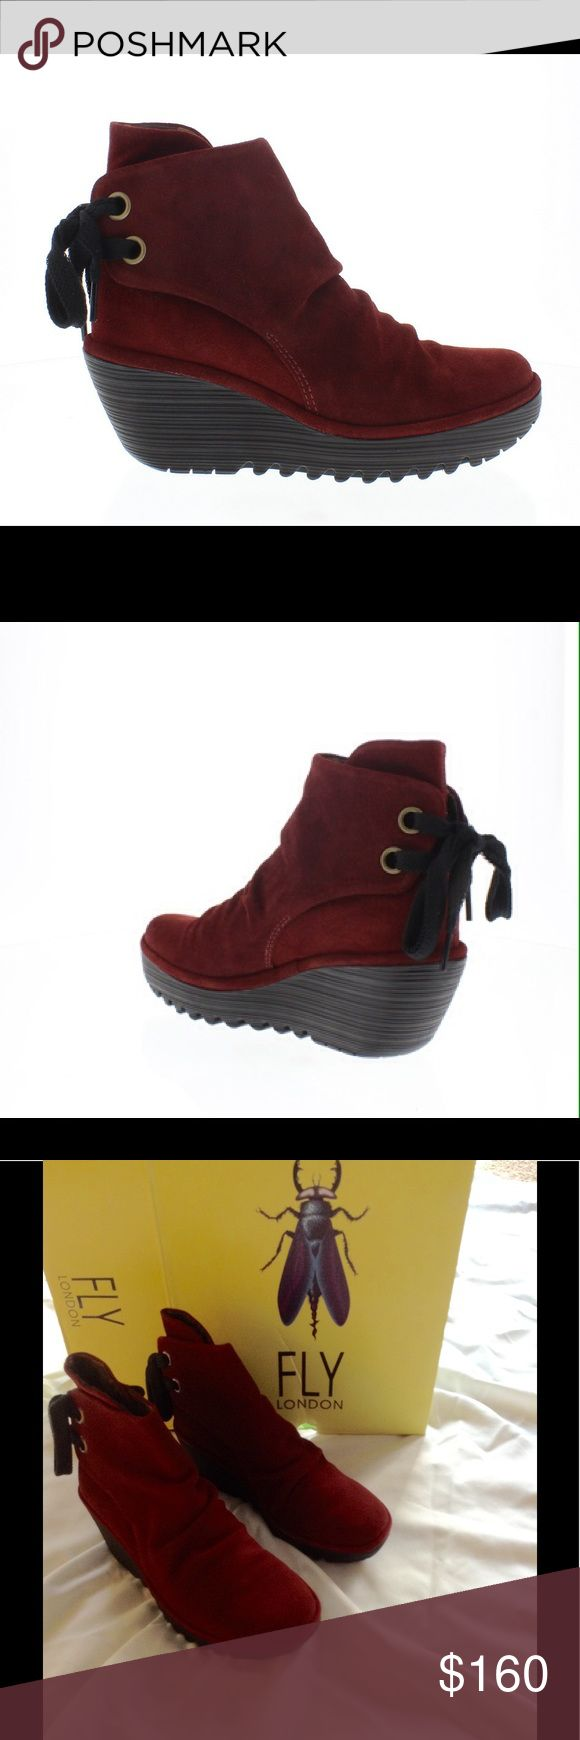 SALE! Fly London Yama Boots Oil Suede Wine Red 38 Brand new with box red suede boots with cute tie in back. Fly London Shoes Ankle Boots & Booties